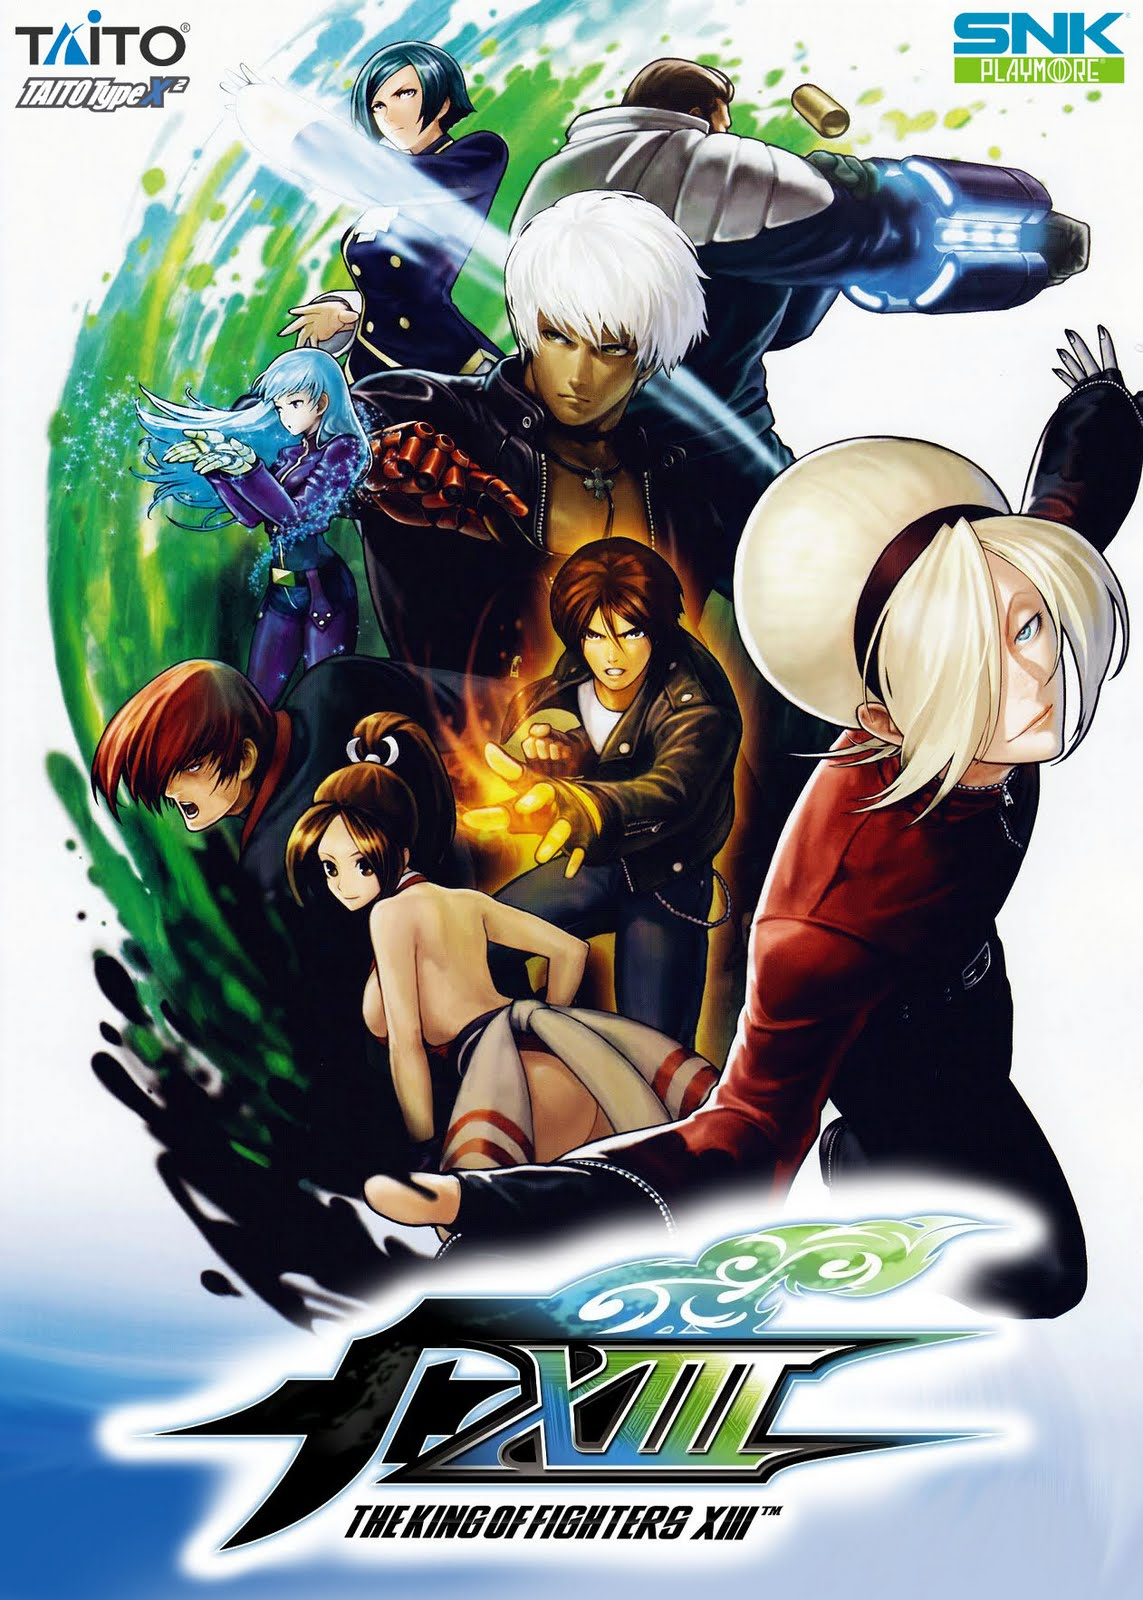 (PC) Taito Type x1 y 2 Collection (2004-2011) Kof_xiii_kof13%2Bcover